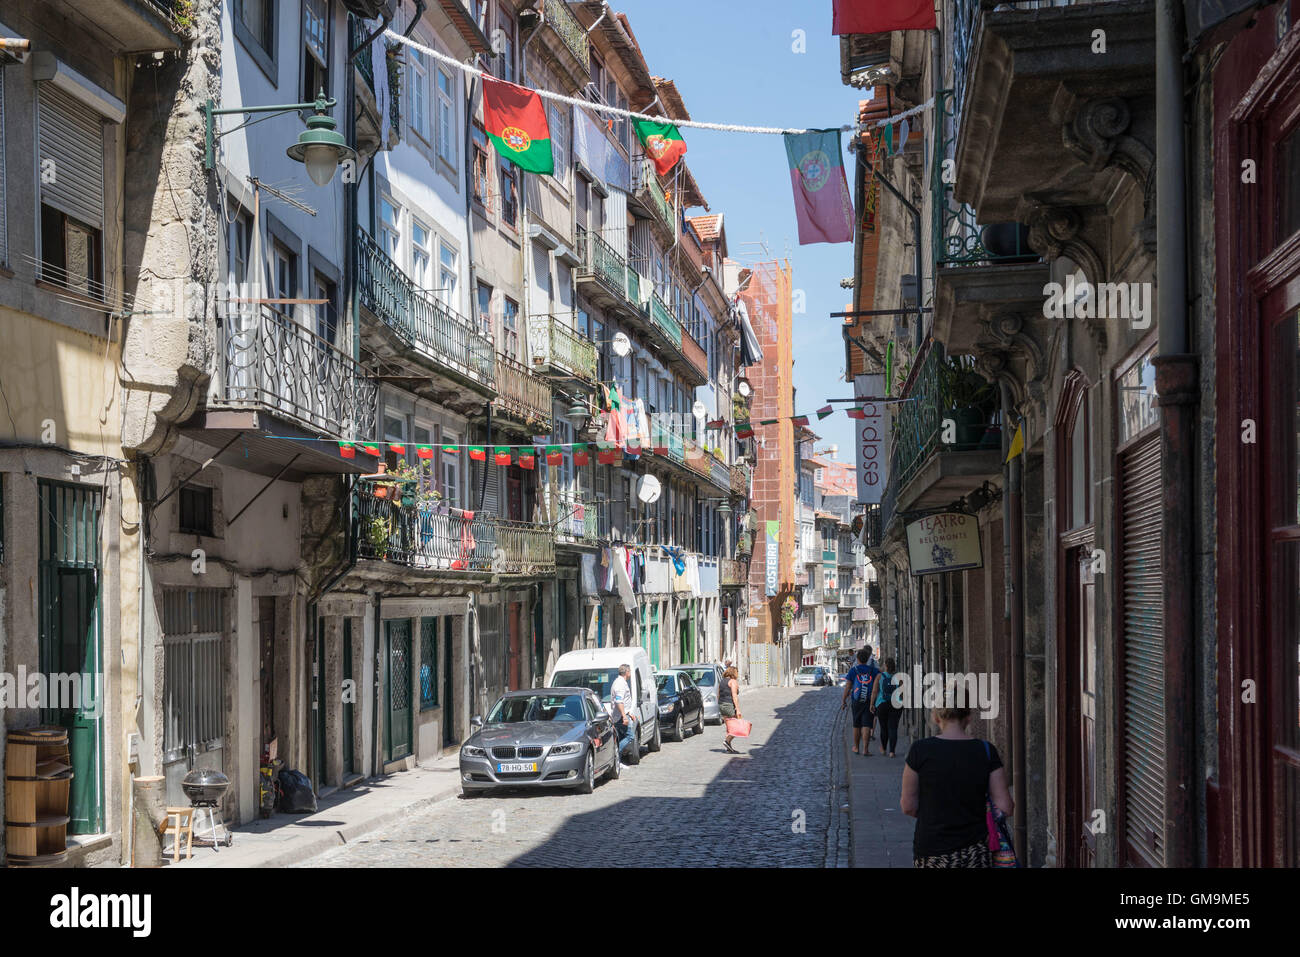 Street in the old Jewish quarter, Miragaia, Porto, Portugal Stock Photo